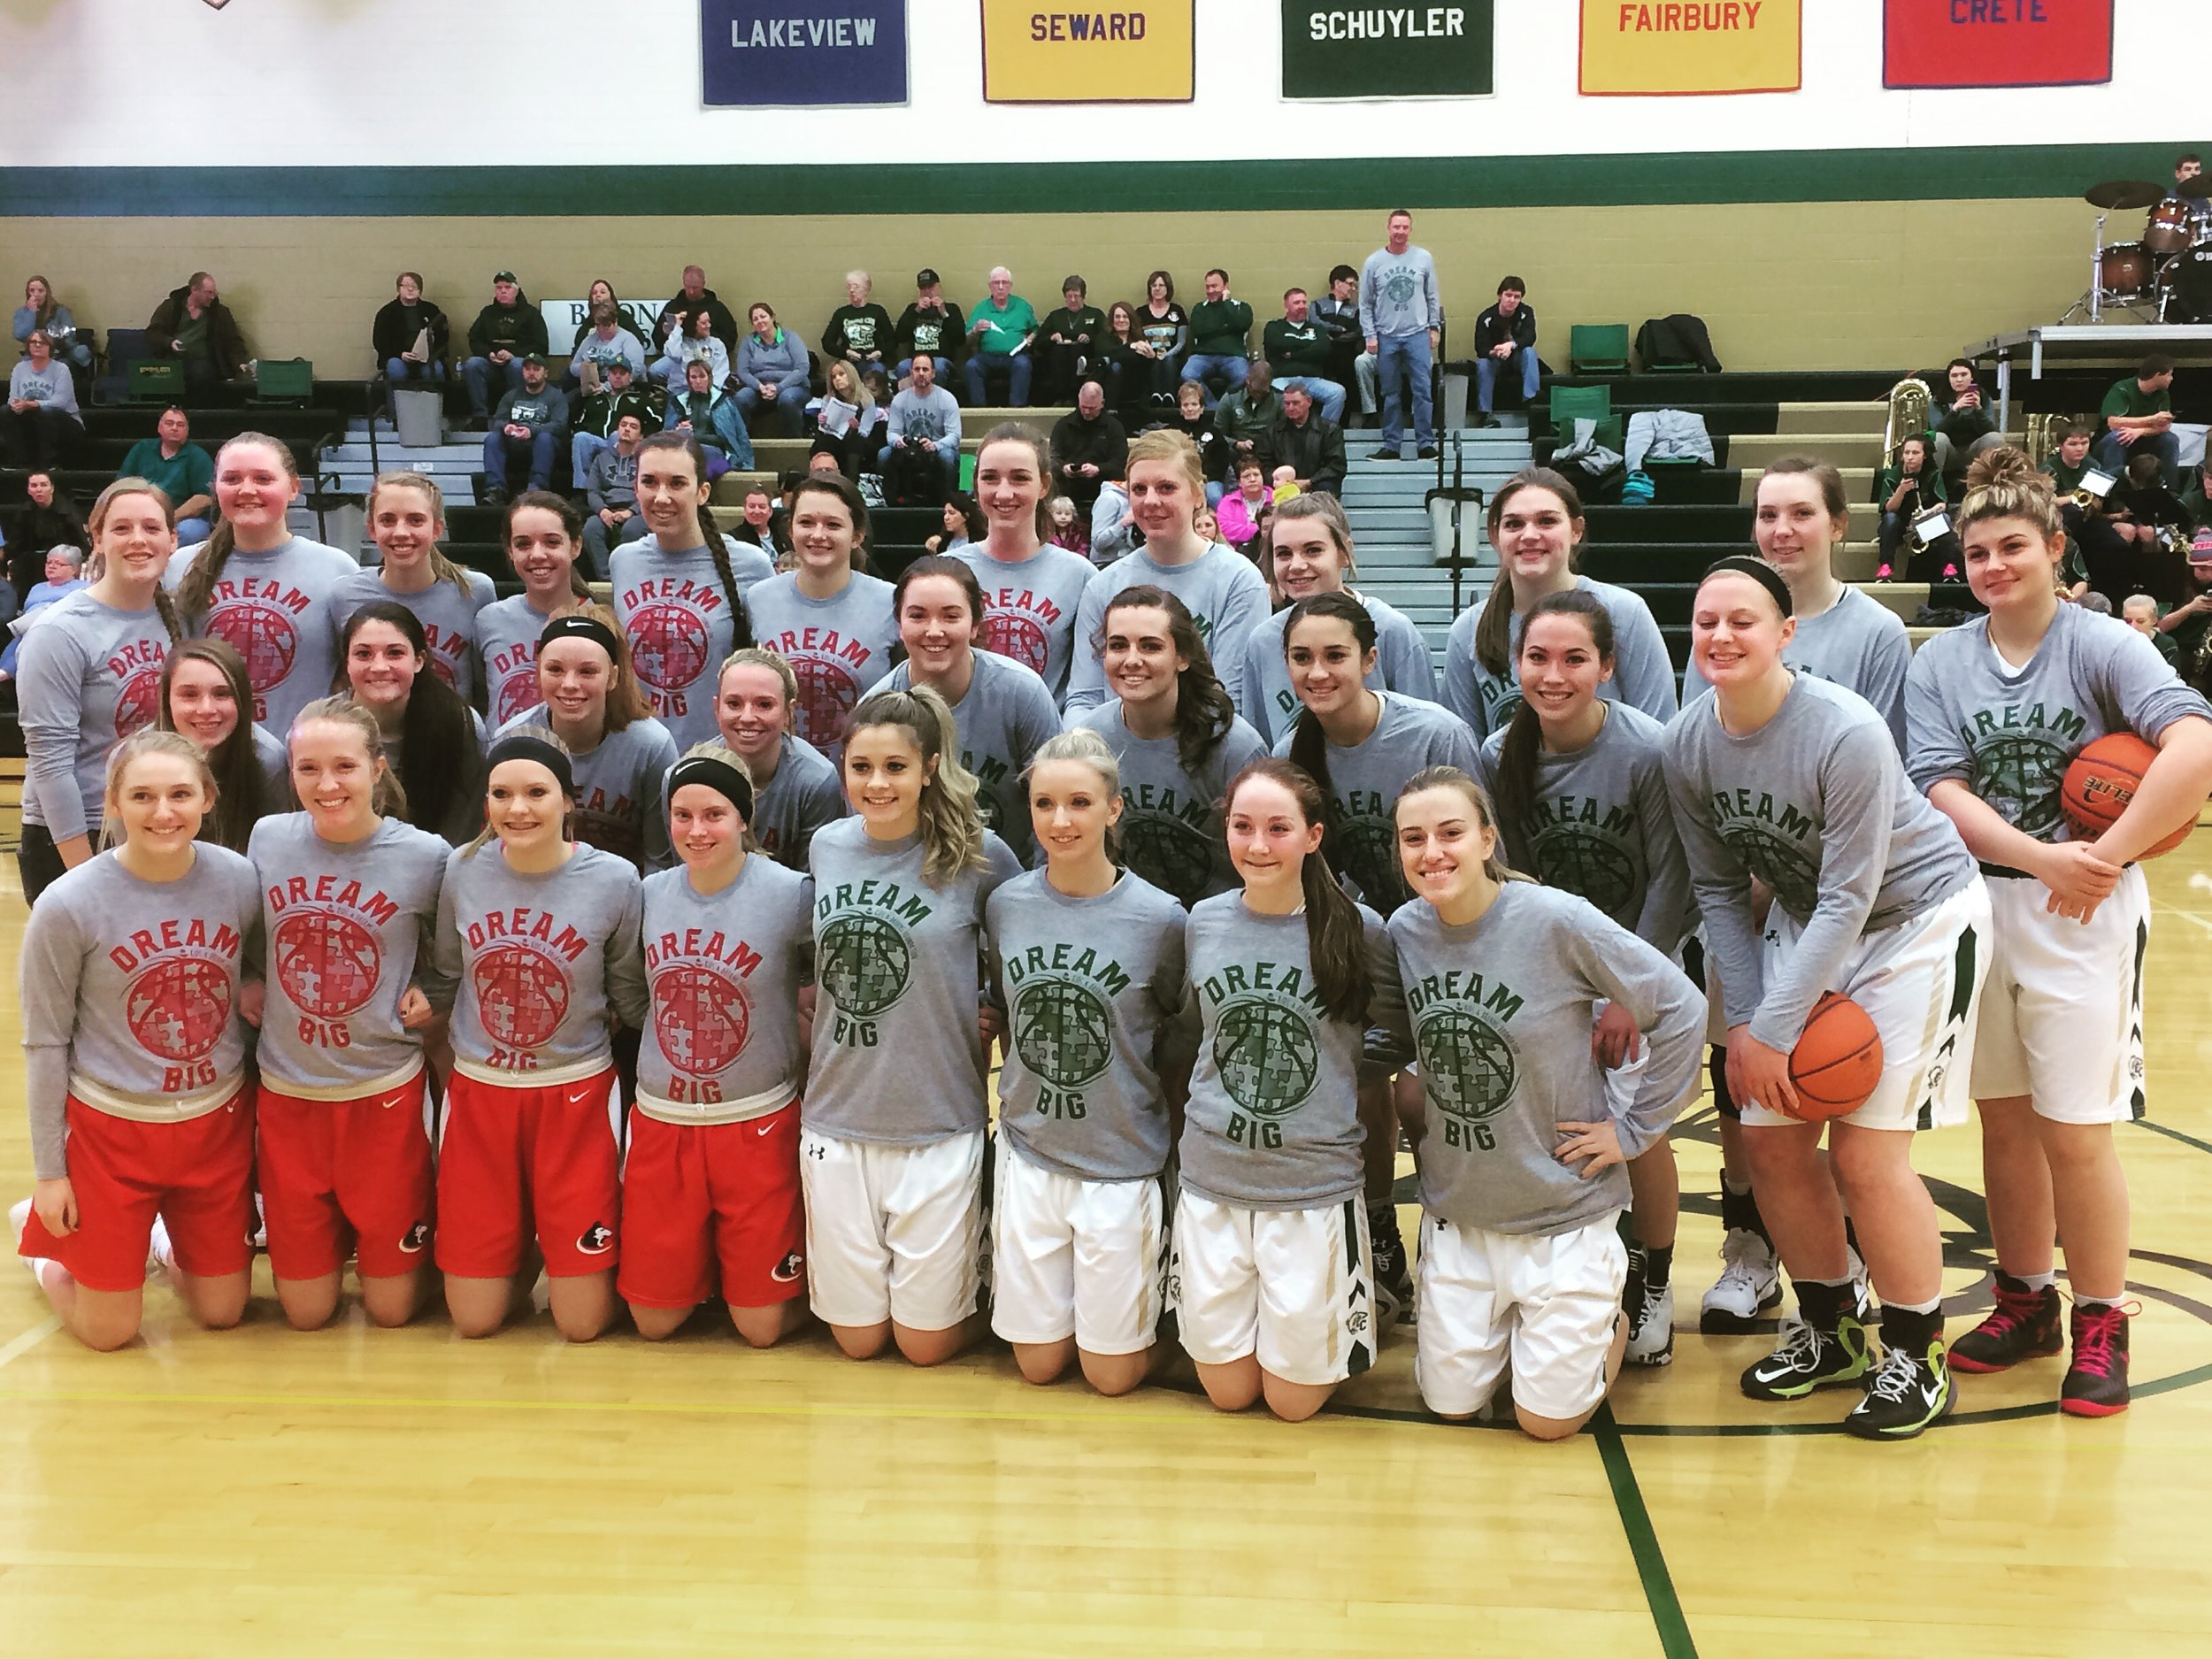 The Aurora vs Central City Awareness Outing was one of our highlights last year as both teams wore our Dream Big shirts to raise awareness. What an awesome night!! Thanks so much to both schools for their support!